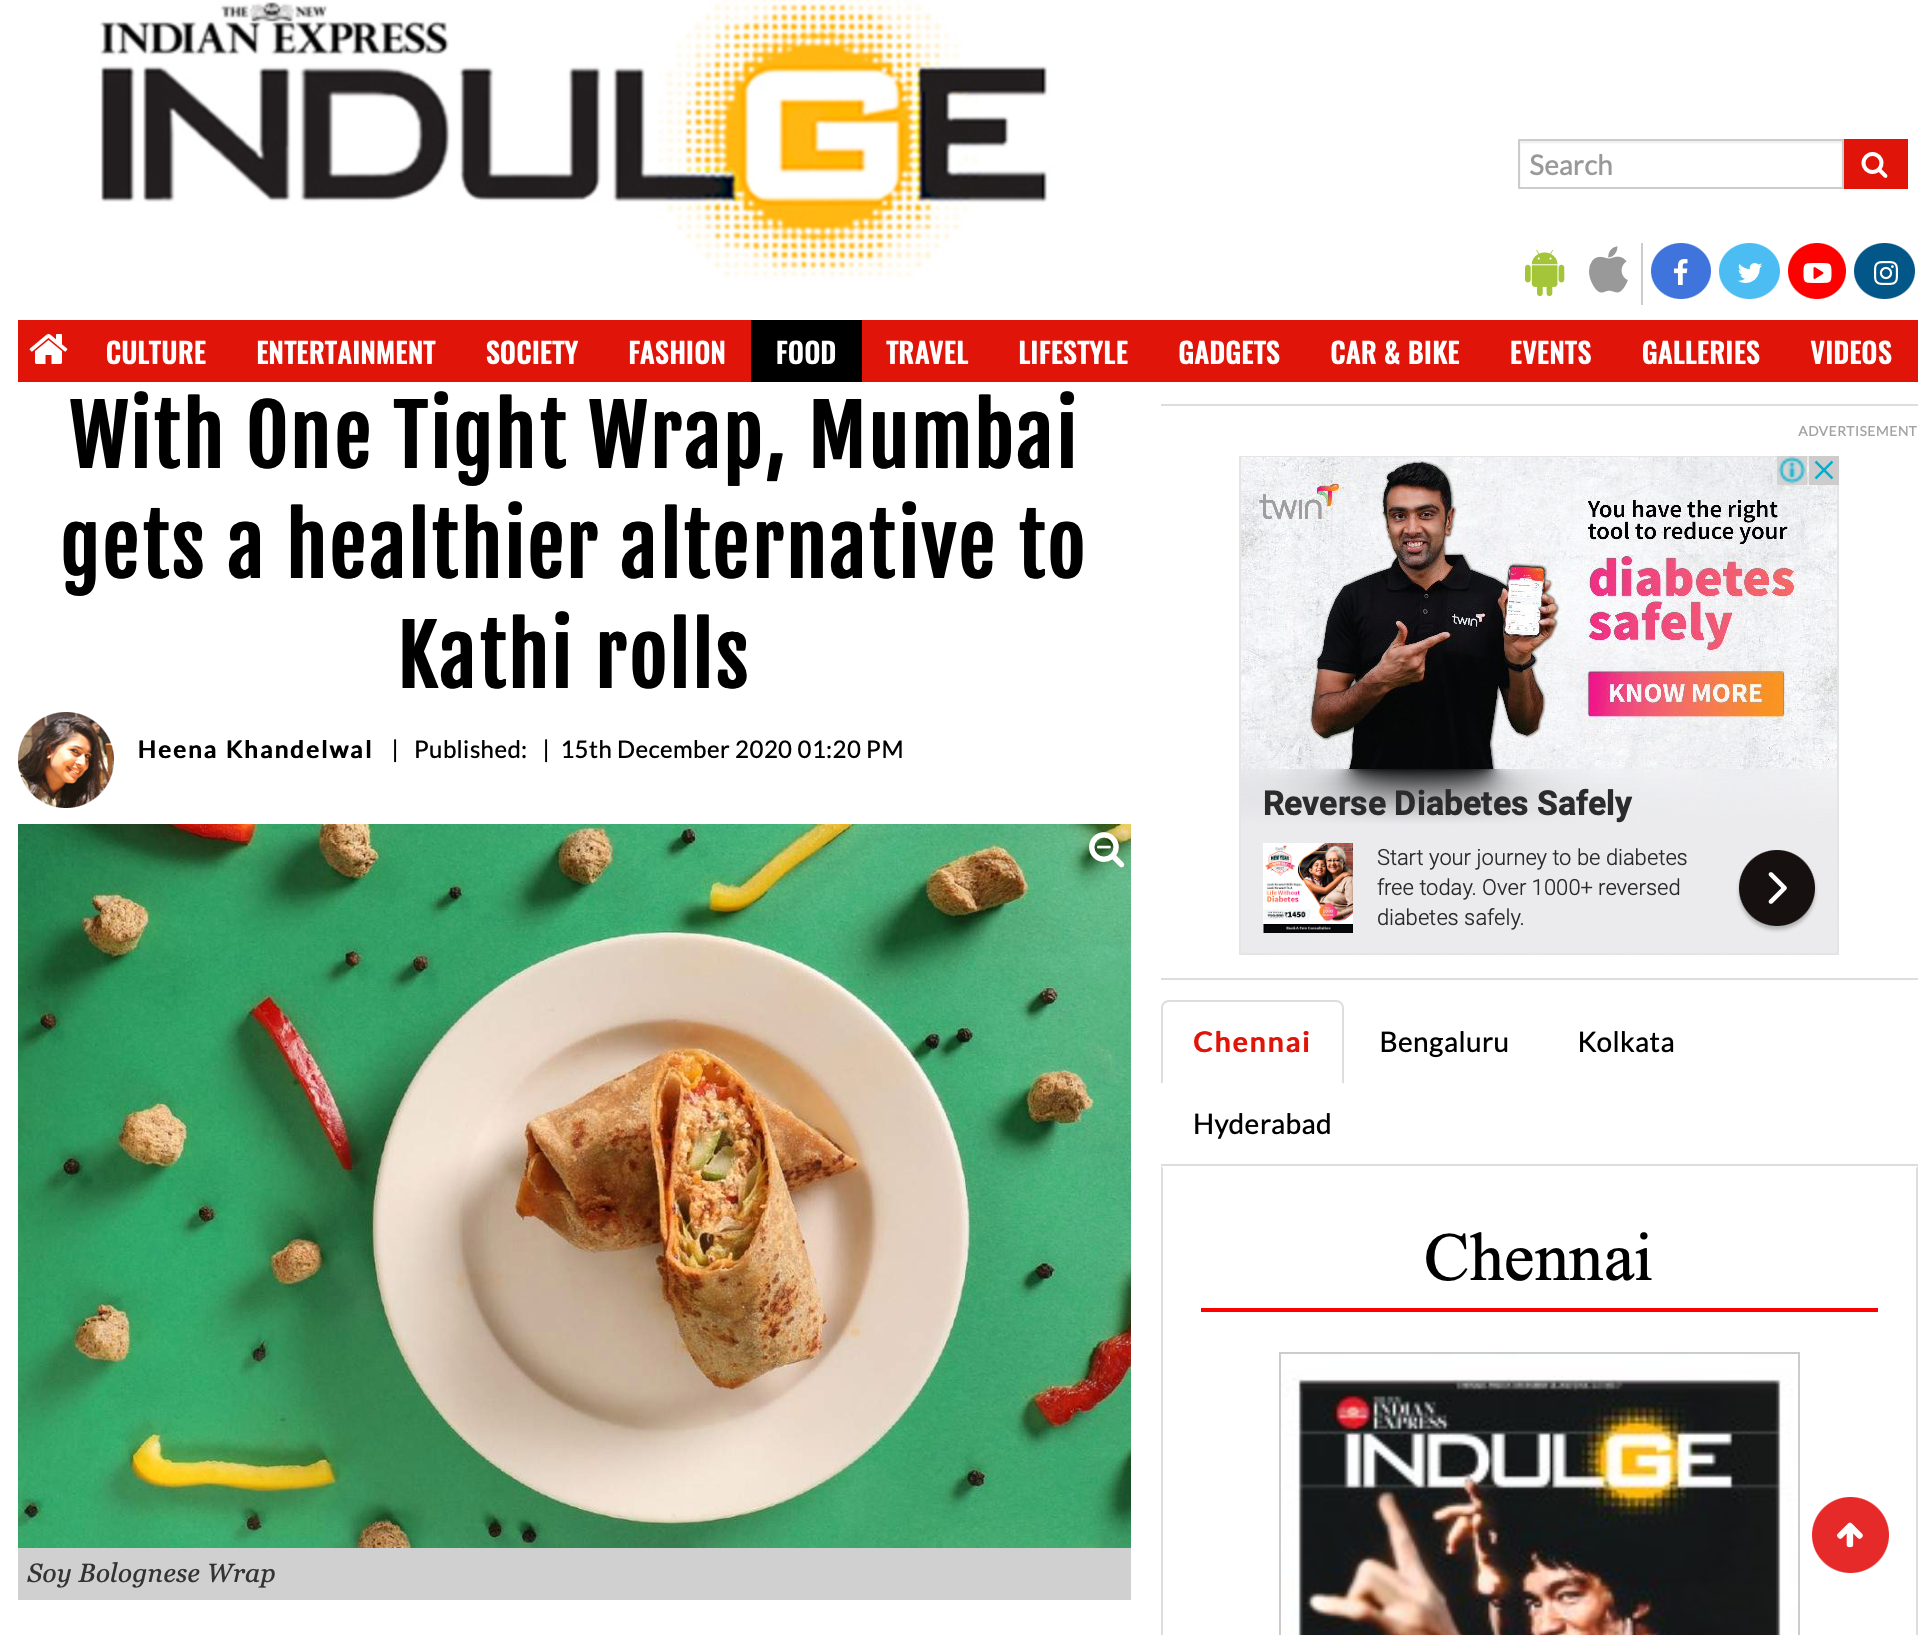 INDIAN EXPRESS INDULGE